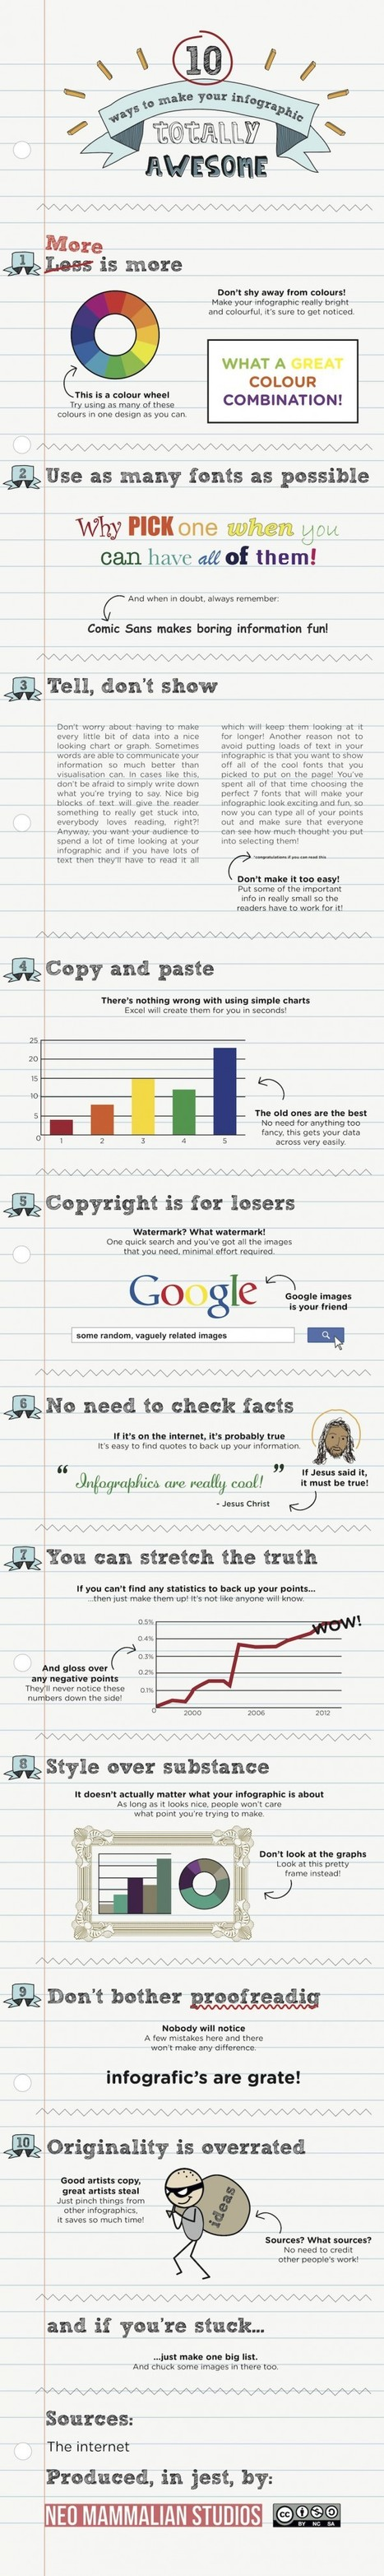 Make Awesome Infographics In 10 Easy Steps | Digital-News on Scoop.it today | Scoop.it